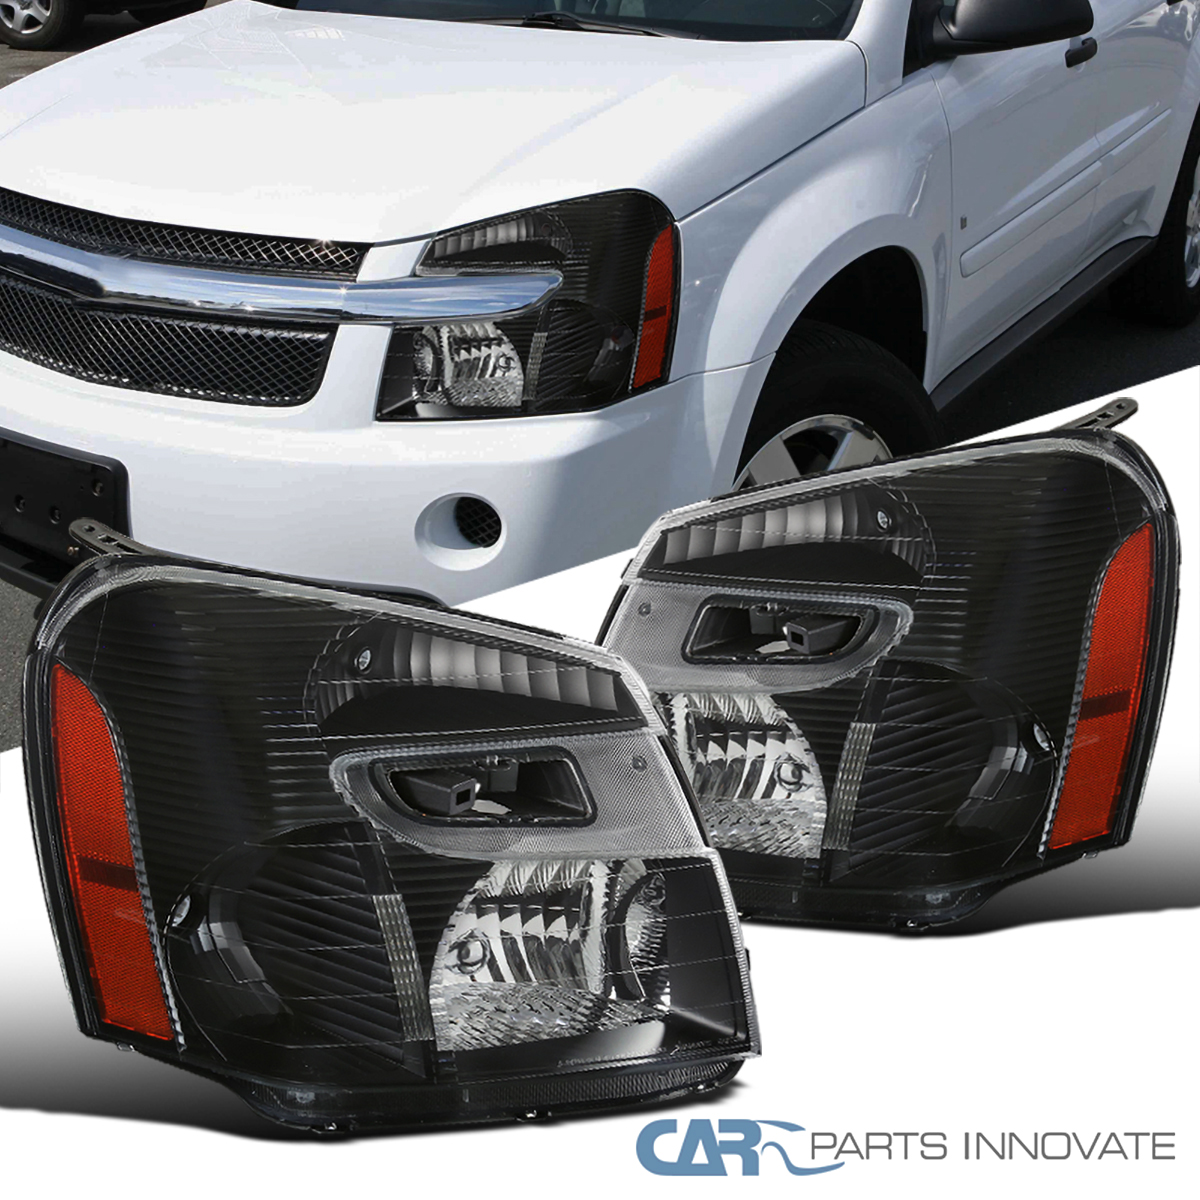 New Pair Set for 05-09 Chevy Equinox Headlights Headlamps Left /& Right 2005-2009